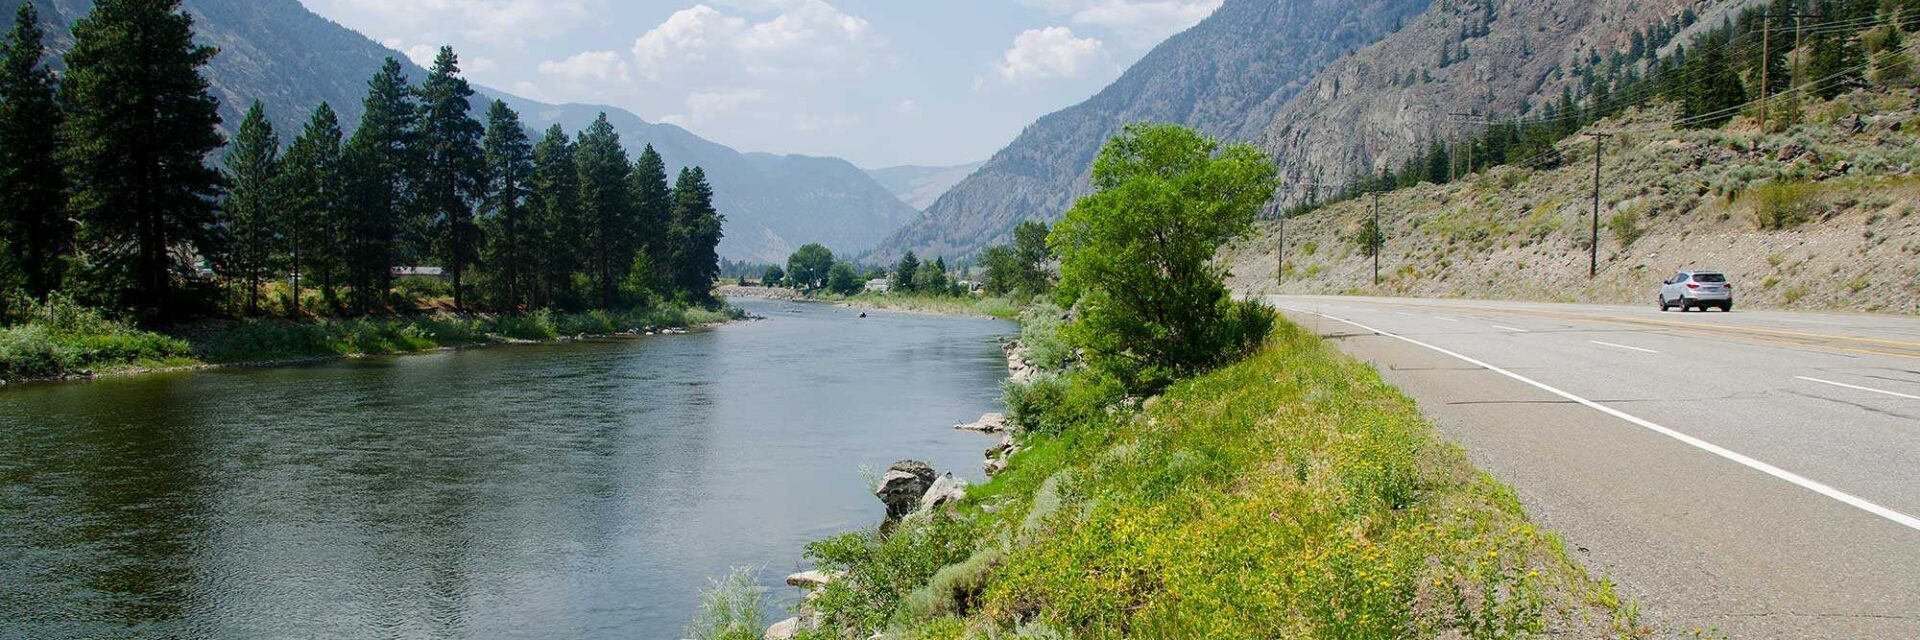 Driving Hwy 3 beside the Similkameen River